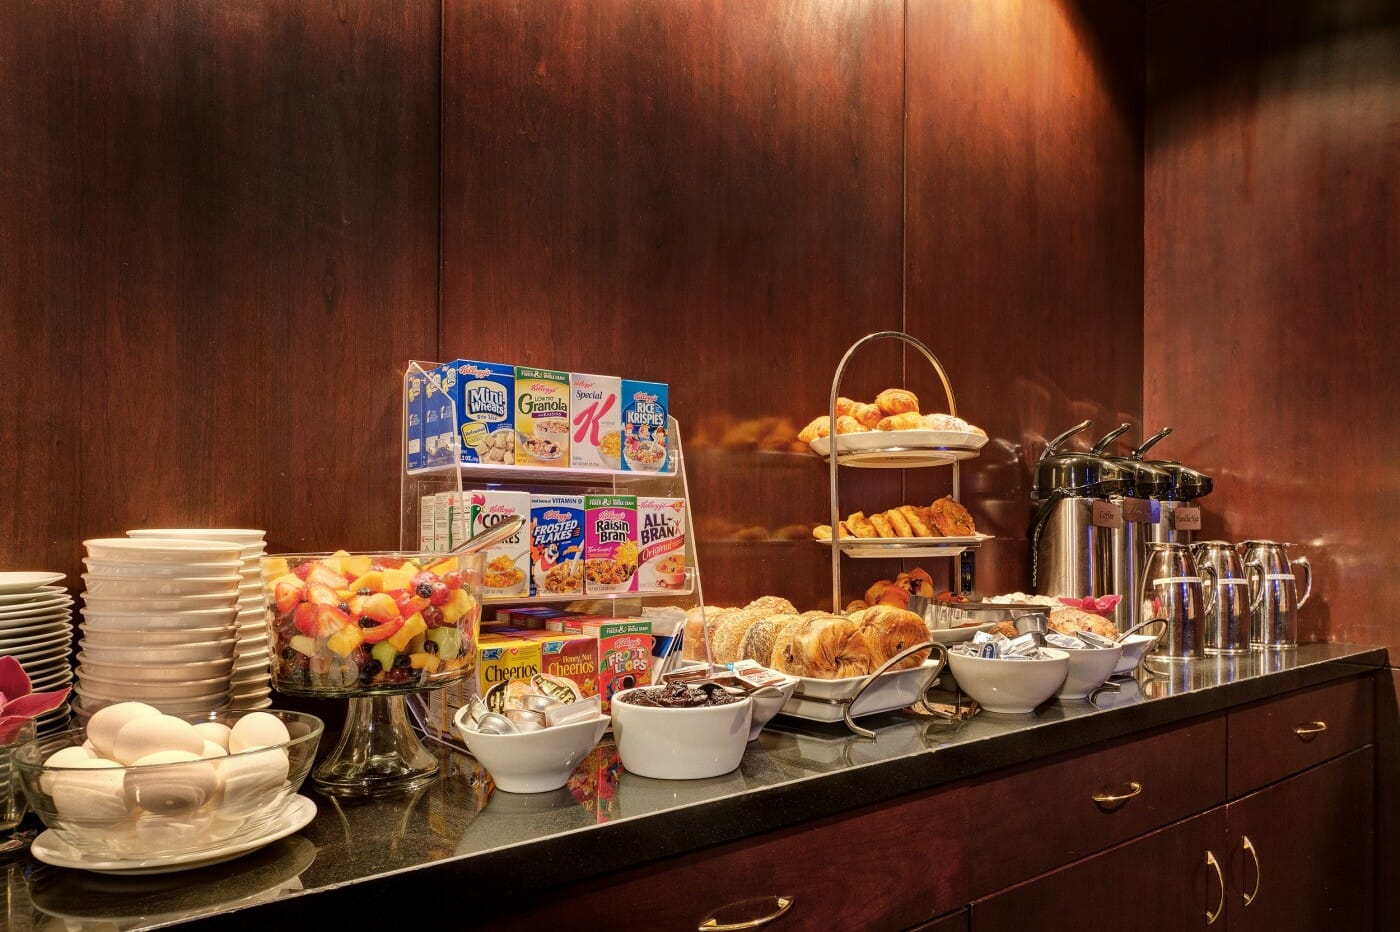 A Typical Hotel Continental Breakfast